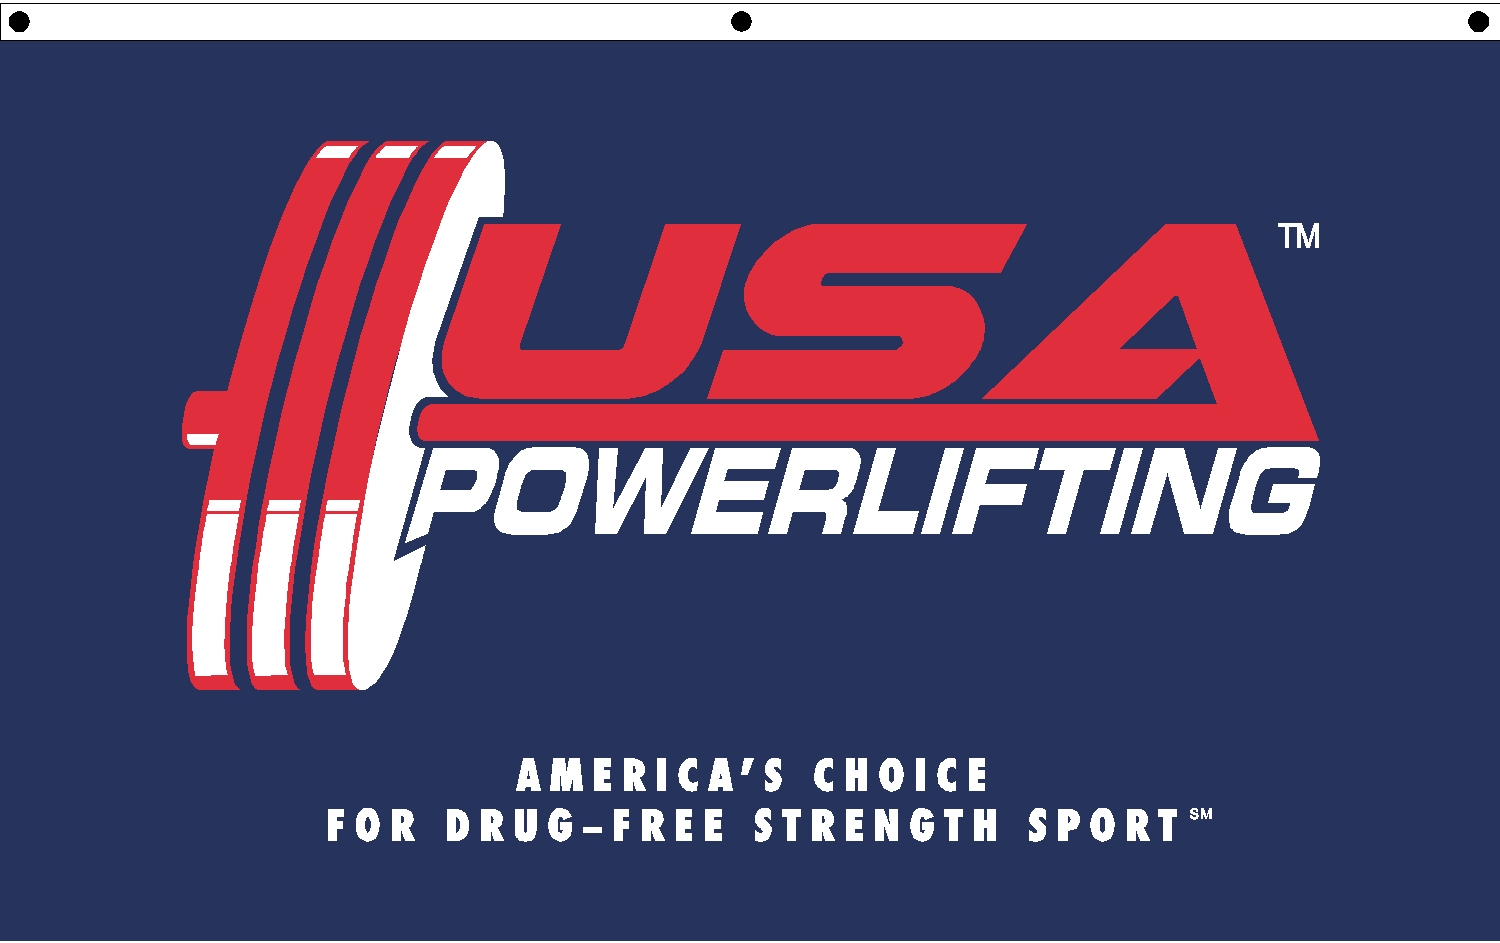 Powerlifting logo designs